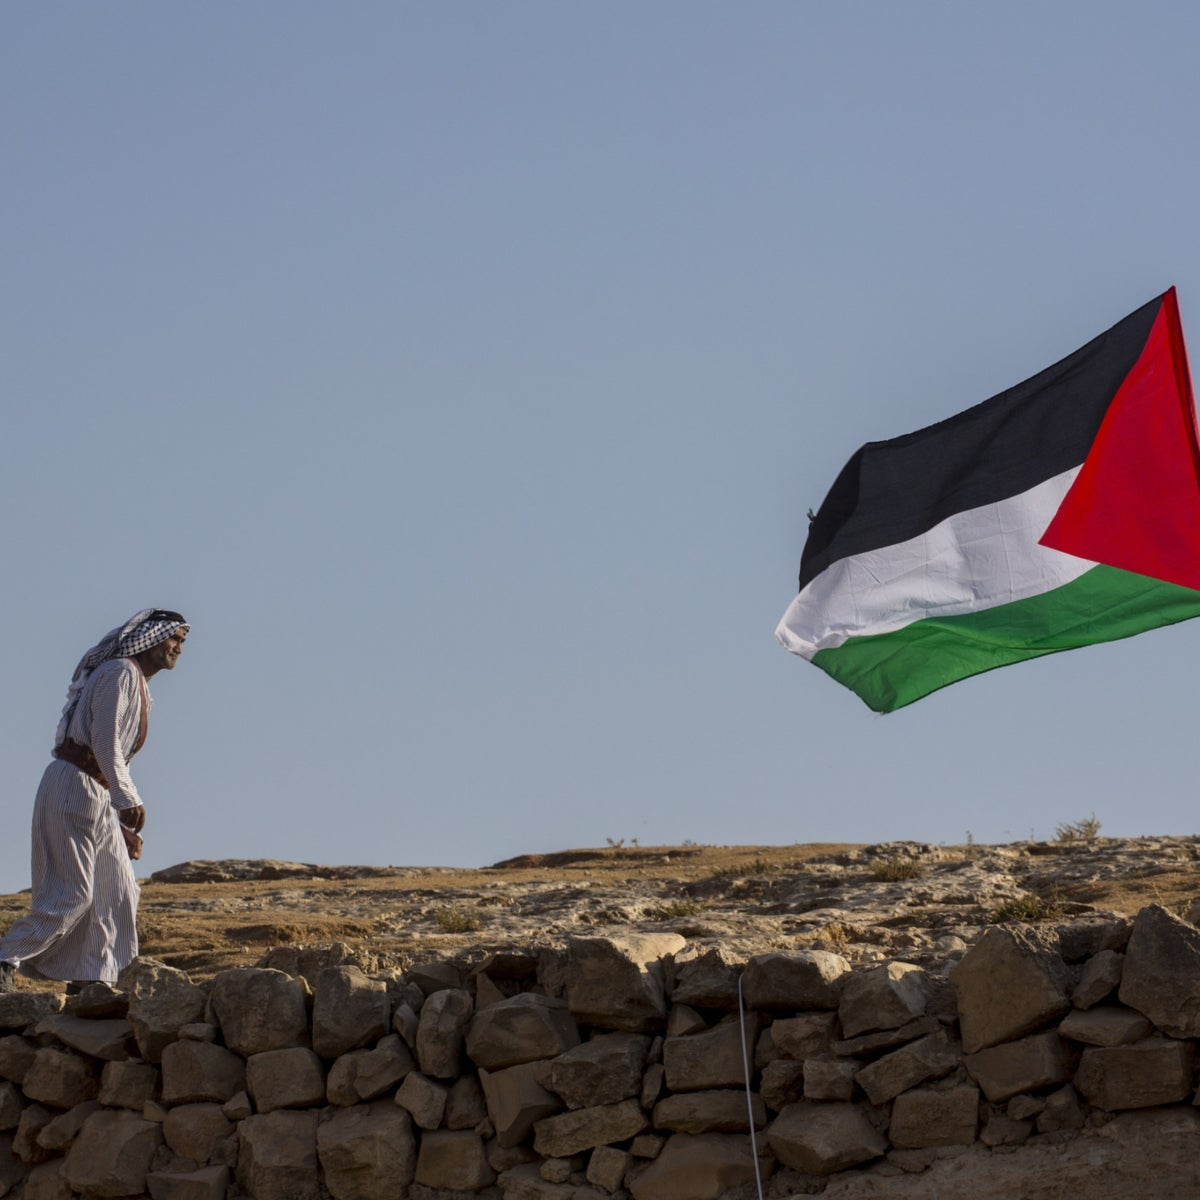 A Palestinian man walking toward the Palestinian flag in the South Hebron Hills in the West Bank.